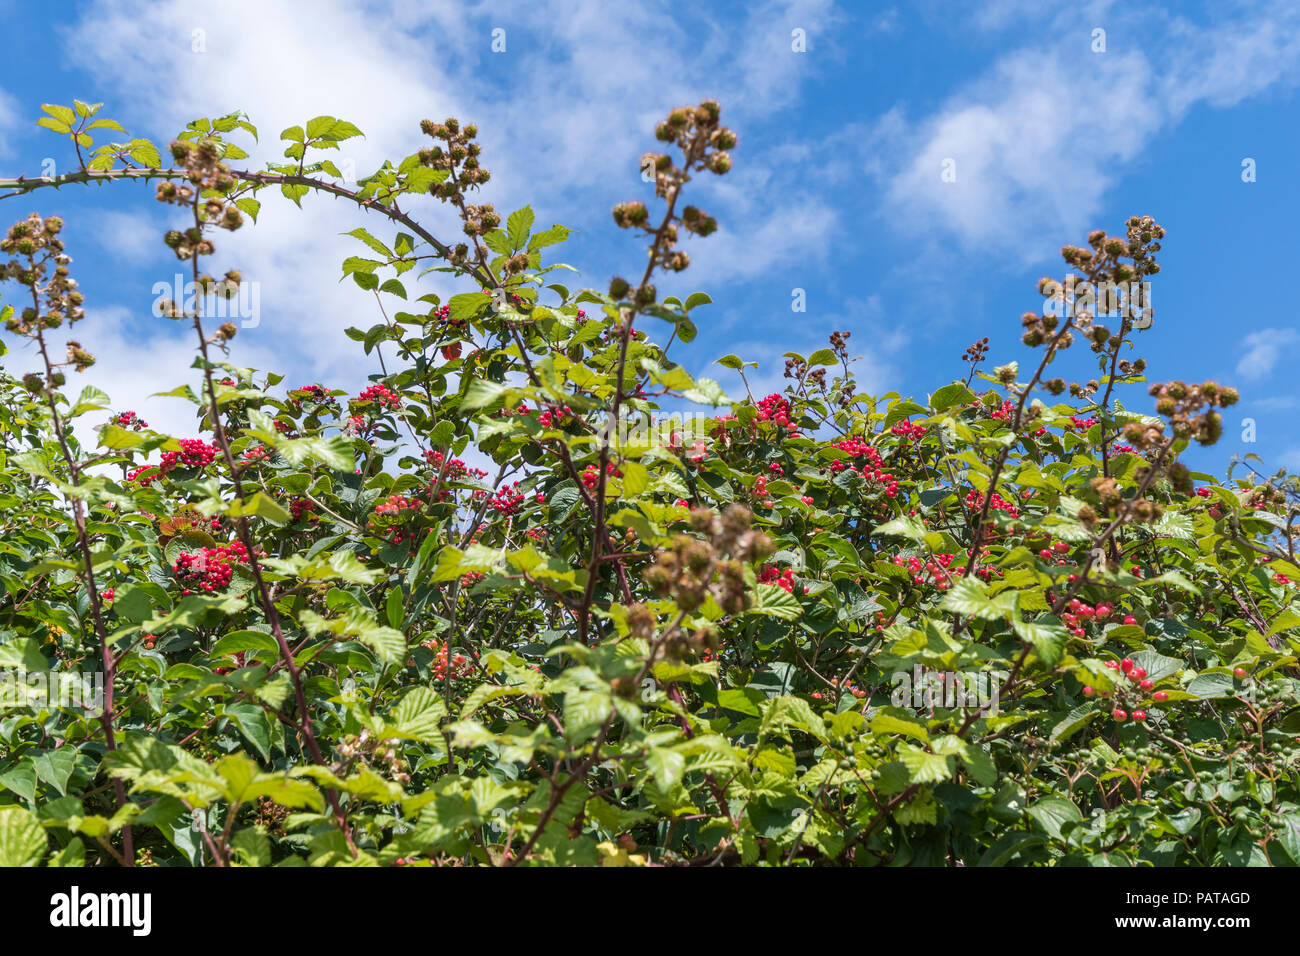 Viburnum shrub, likely Viburnum lantana (AKA the Wayfarer or Wayfaring tree) with red berries against blue sky in Summer (July)in West Sussex, UK. Stock Photo